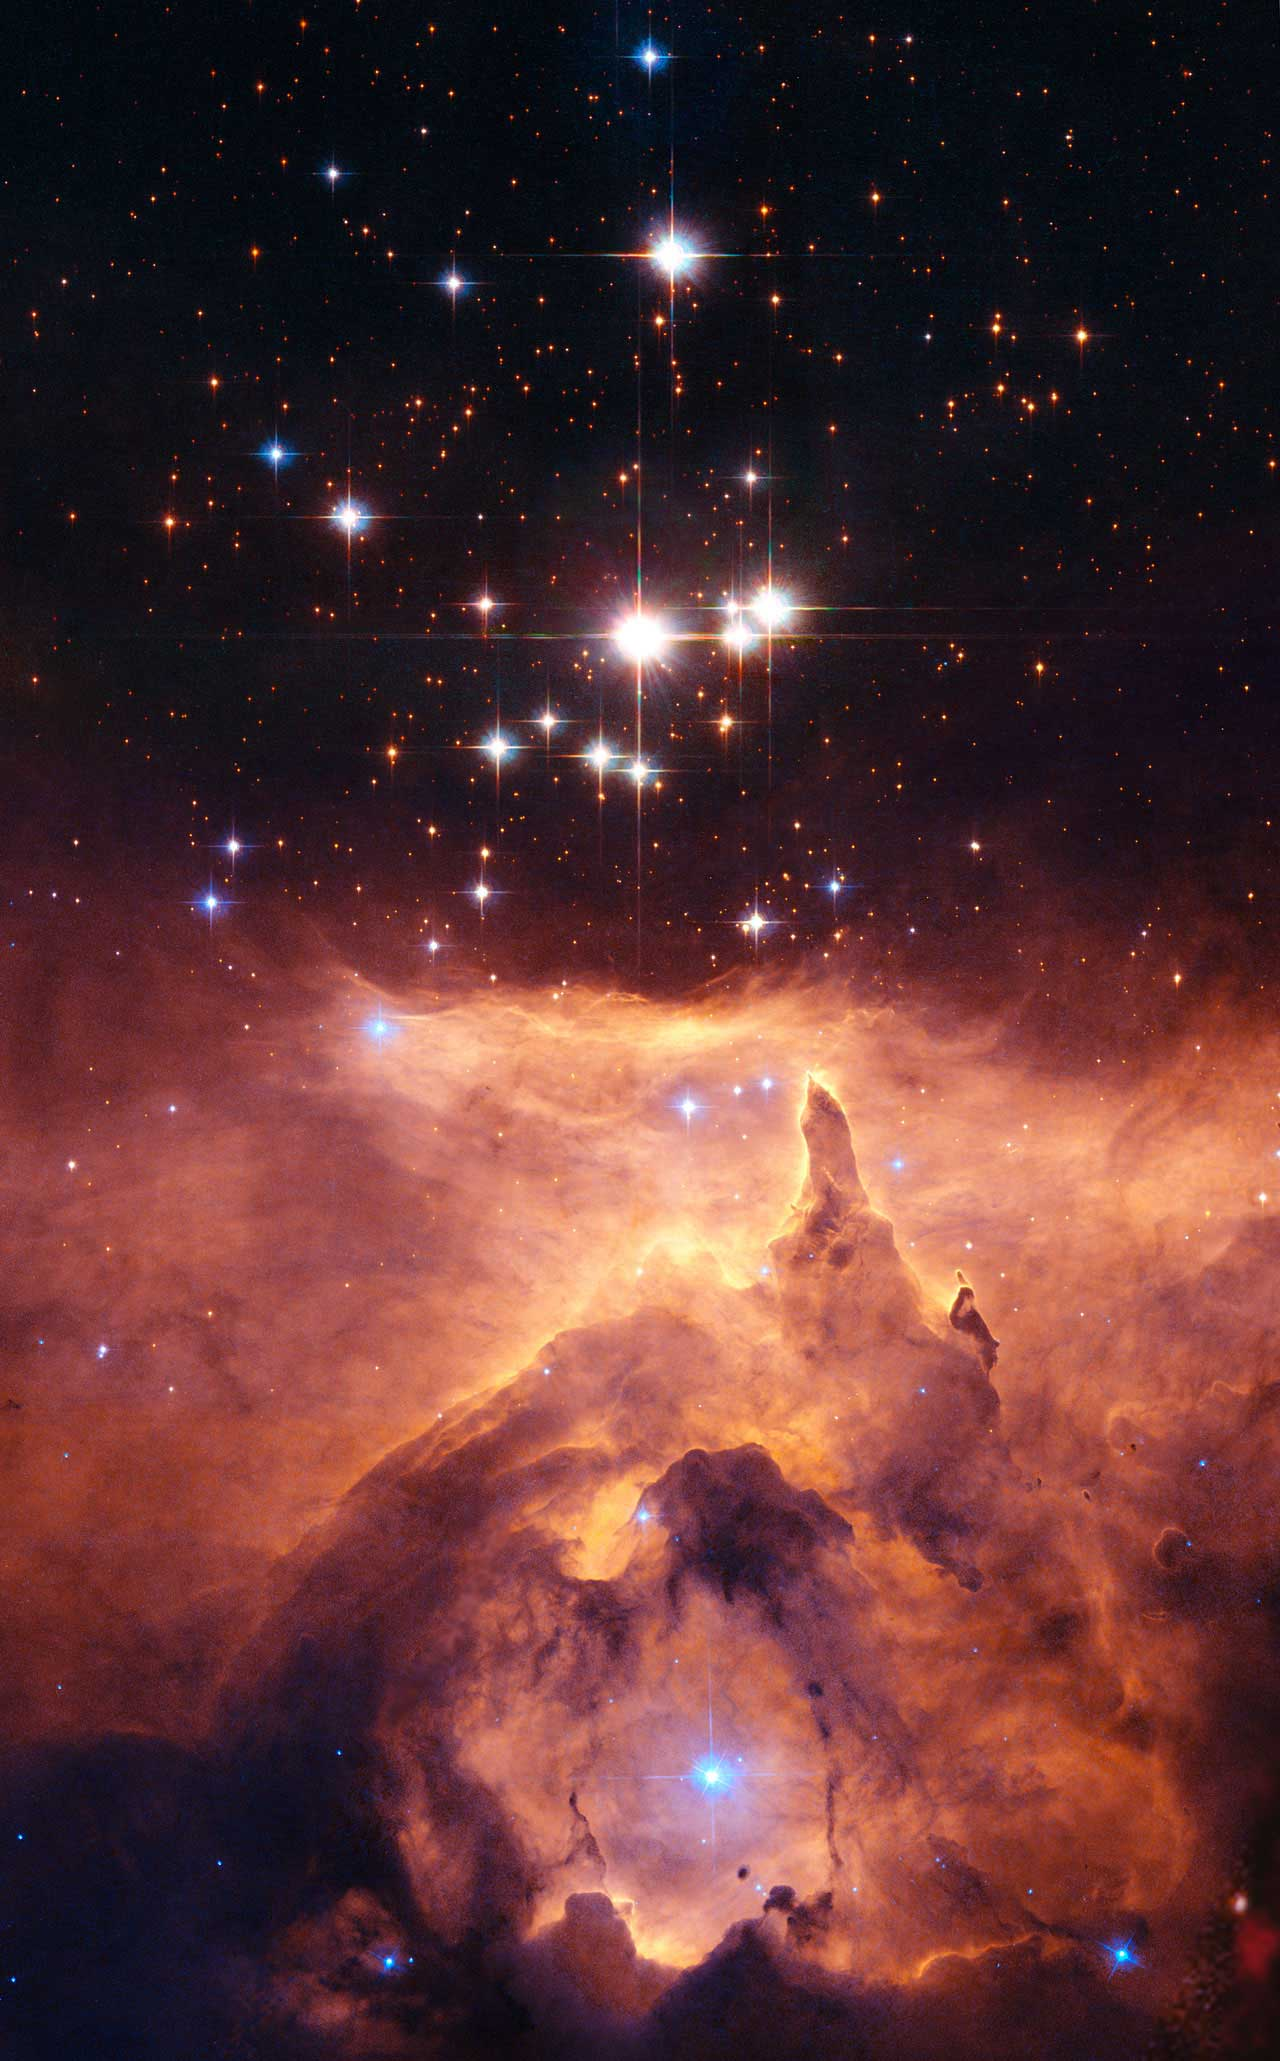 Pismis 24:                               The small open star cluster Pismis 24 lies in the core of the large emission nebula NGC 6357 in Scorpius, about 8,000 light-years away from Earth. The brightest object in the picture is designated Pismis 24-1. It was once thought to weigh as much as 200 to 300 solar masses. This would not only have made it by far the most massive known star in the galaxy, but would have put it considerably above the currently believed upper mass limit of about 150 solar masses for individual stars.                                                              However, Hubble Space Telescope high-resolution images of the star show that it is really two stars orbiting one another. They are estimated to each be 100 solar masses.                               Image released on Dec. 11, 2006